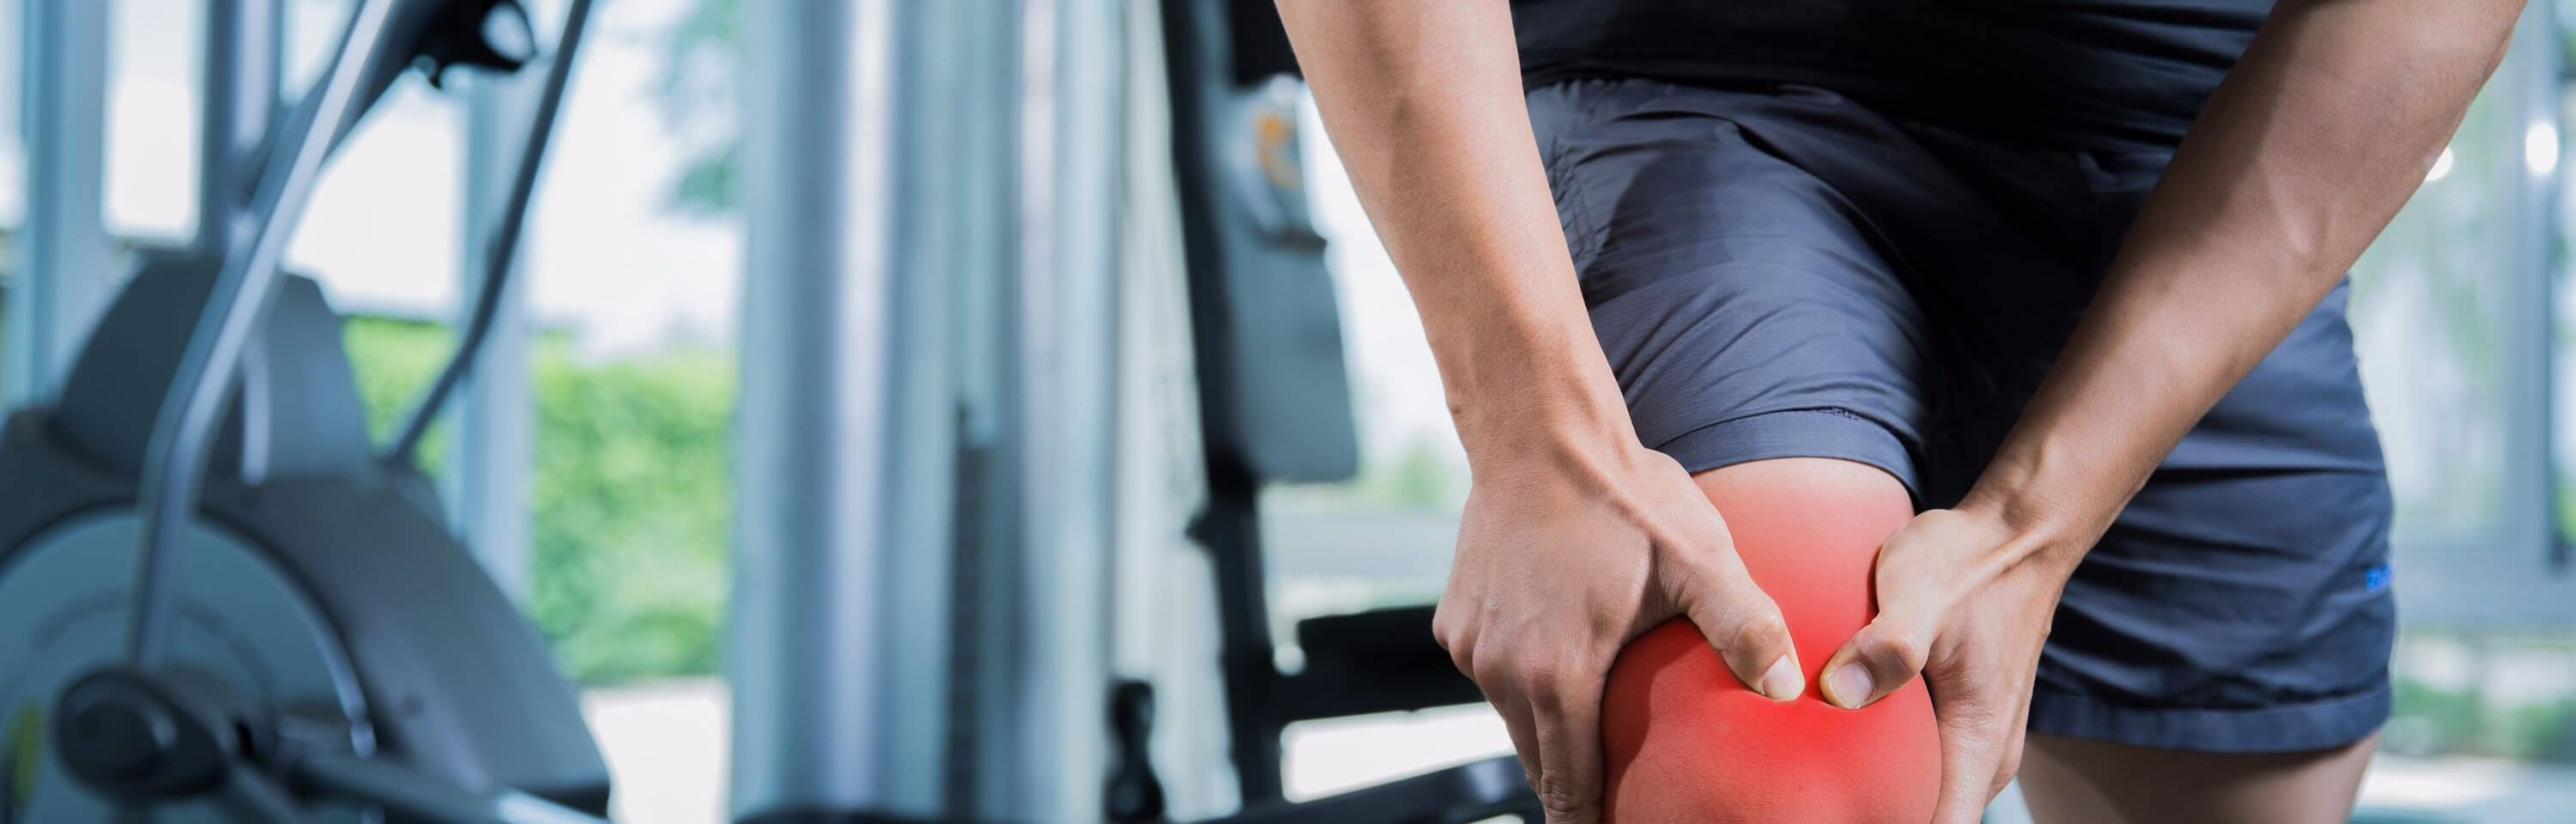 Common Joint and Muscle Injuries | Elastoplast